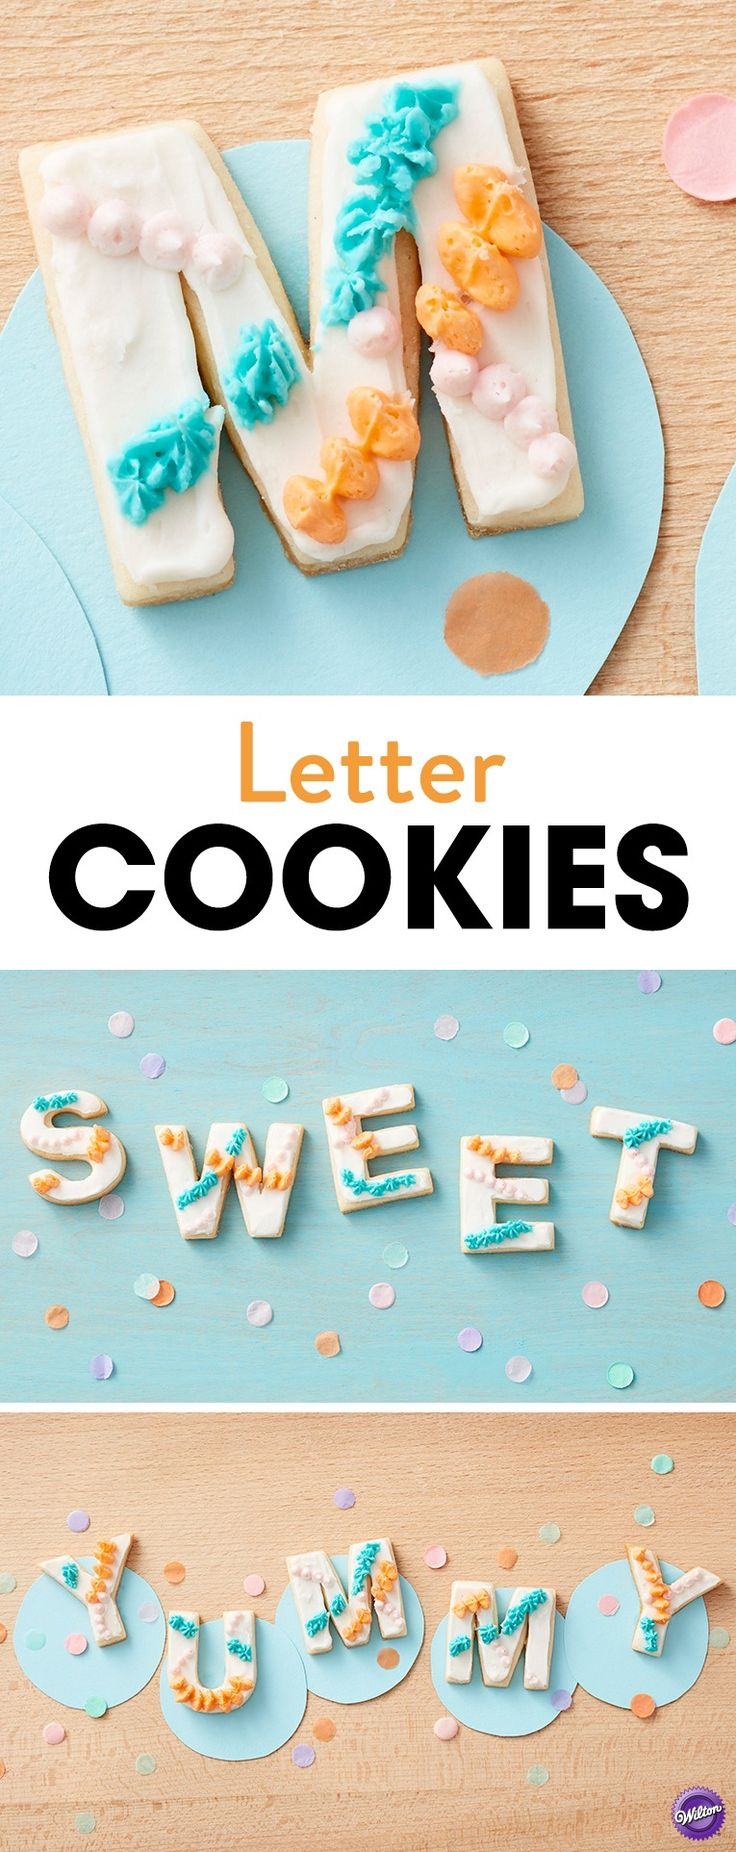 How to Make Easy Letter Cookies - Want to say something sweet? Say it in cookies! Spell out a message of your choice using the Wilton Alphabet Cookie Cutter Set with this simple Easy Letter and Number Cookies project. An easy recipe for beginners, these letter and number cookies are decorated with colorful icing for a treat that looks and tastes great! A fun treat for birthdays, weddings or to just say something nice, these Easy Letter and Number Cookies are an easy project with a big…